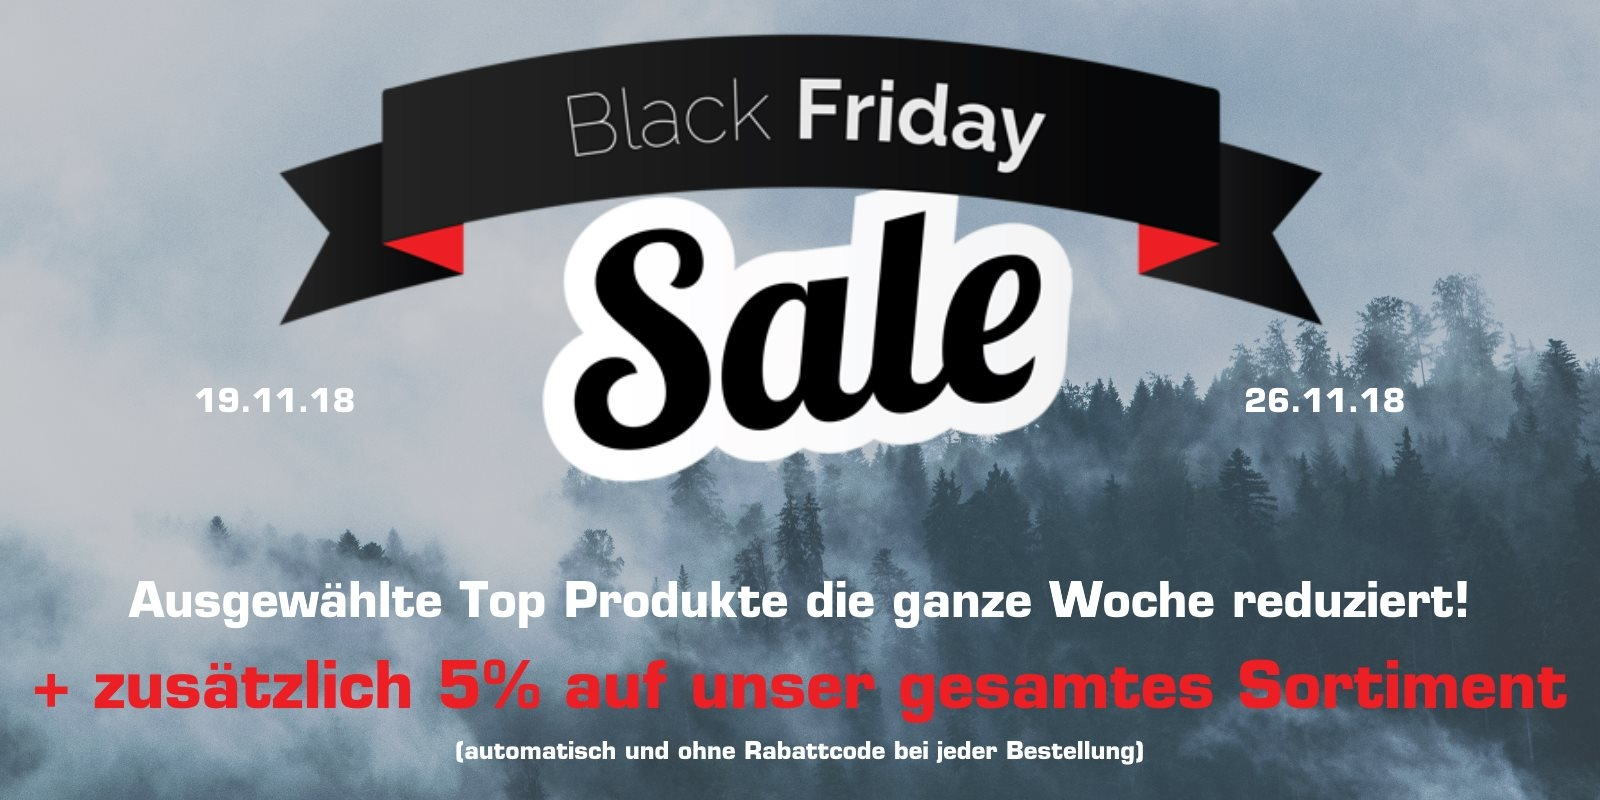 Black Friday Woche Black Friday